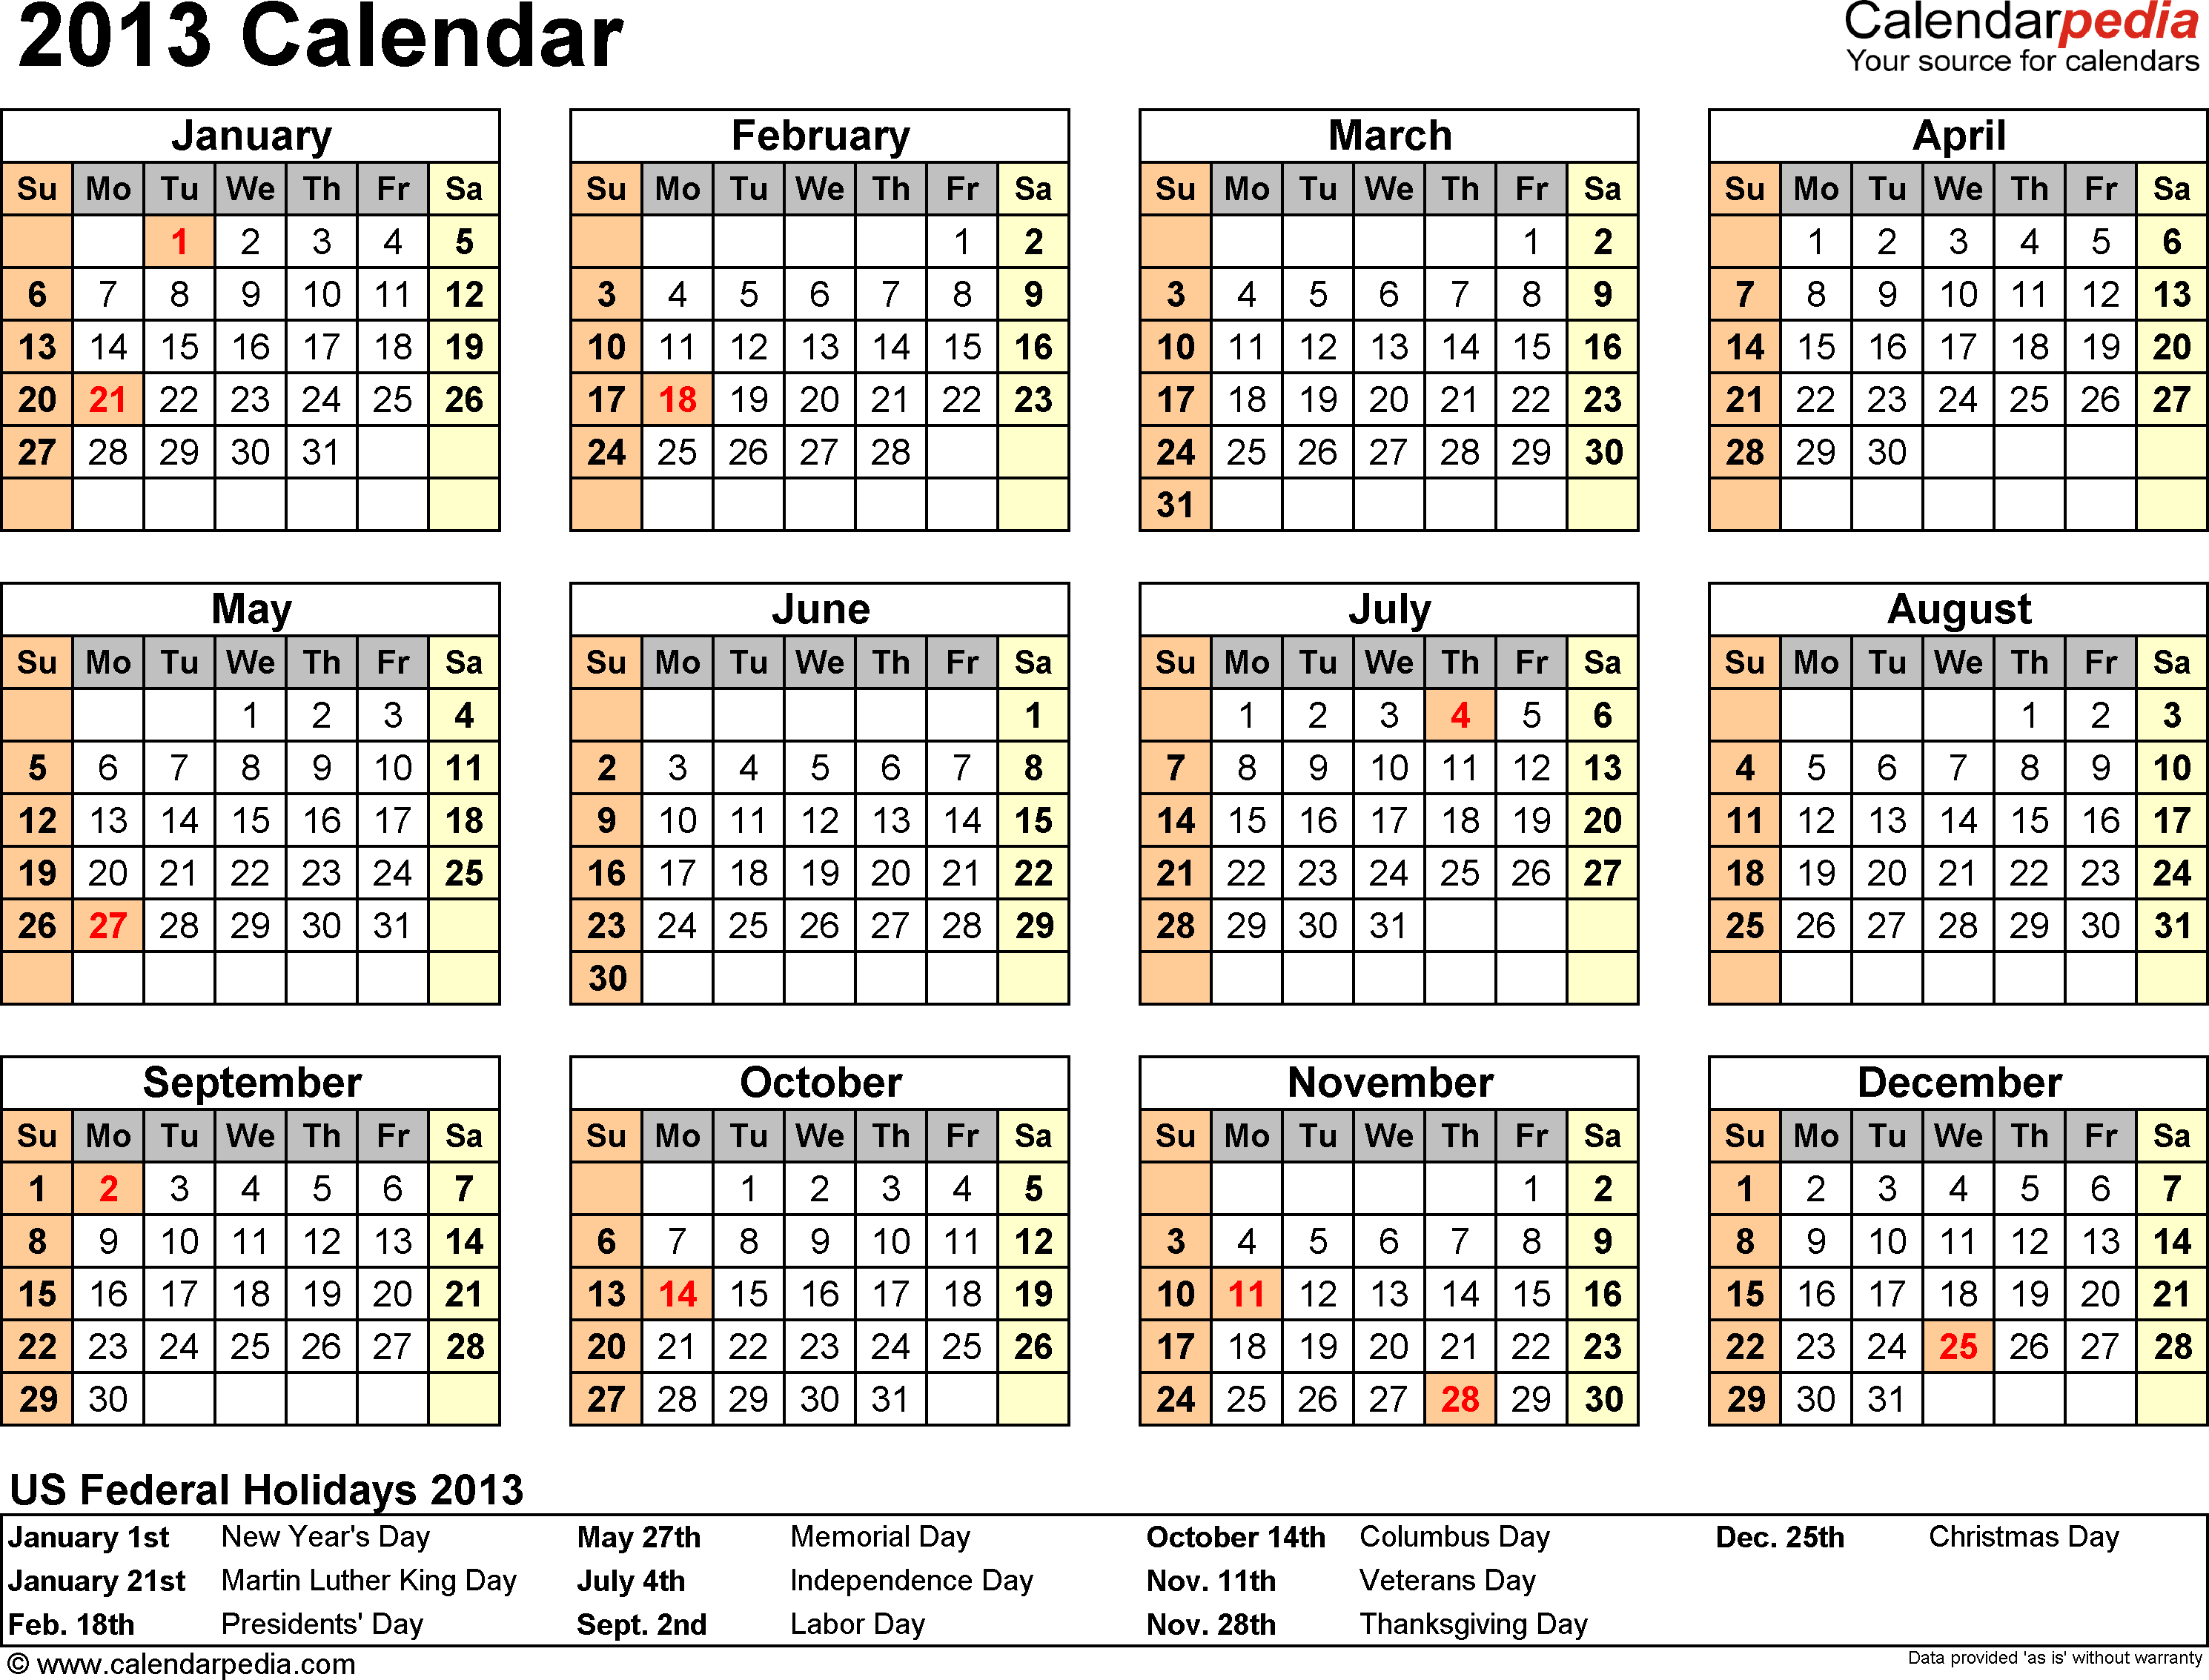 Download PDF template for 2013 calendar template 7: year overview, 1 page, with US federal holidays 2013, paper format: US letter